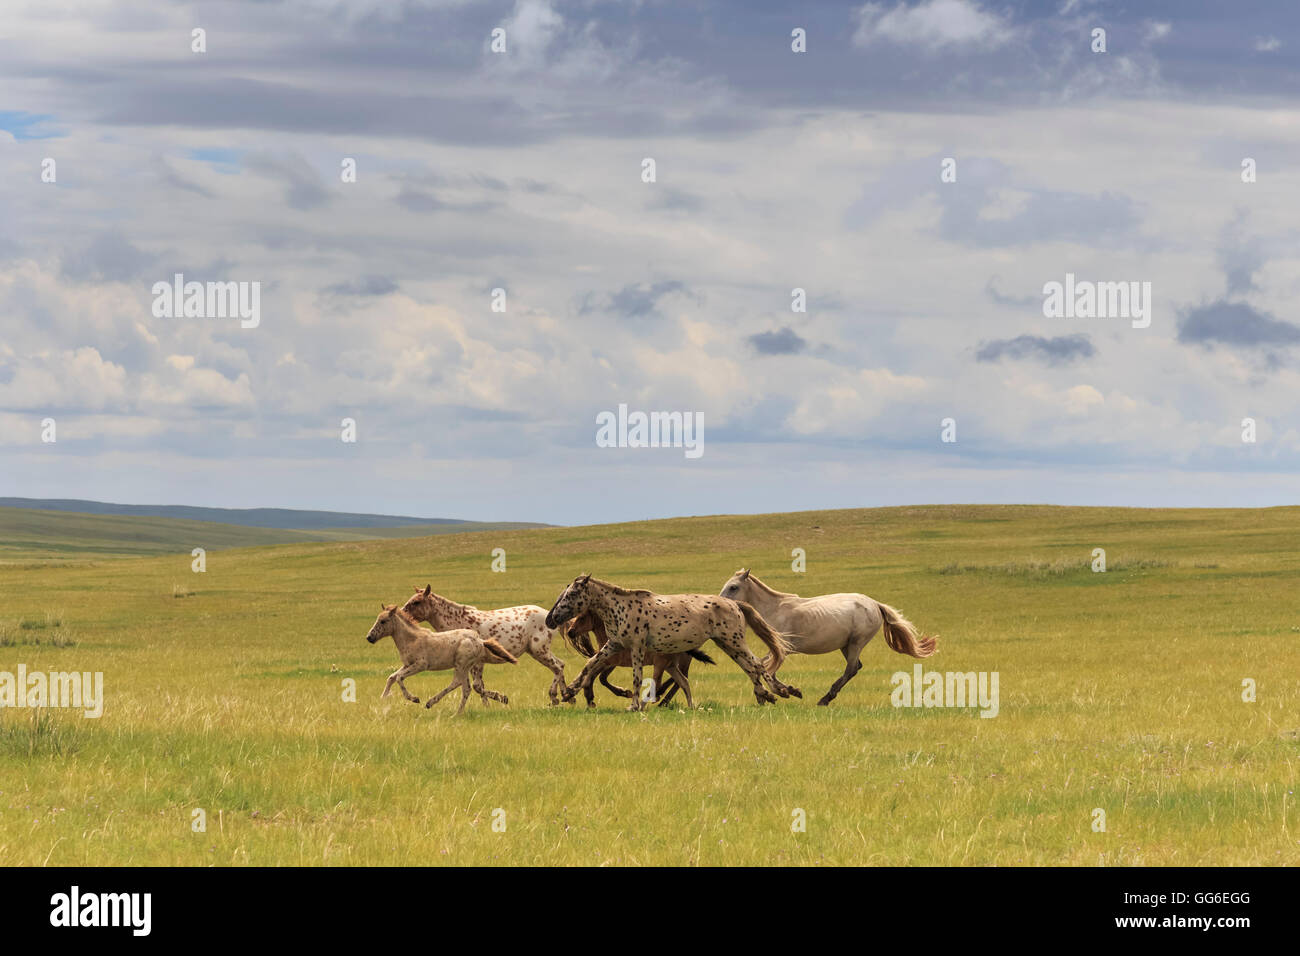 Herd of dappled and pale horses and foals, grassland with flowers in summer, Uvurkhangai, Central Mongolia, Mongolia - Stock Image